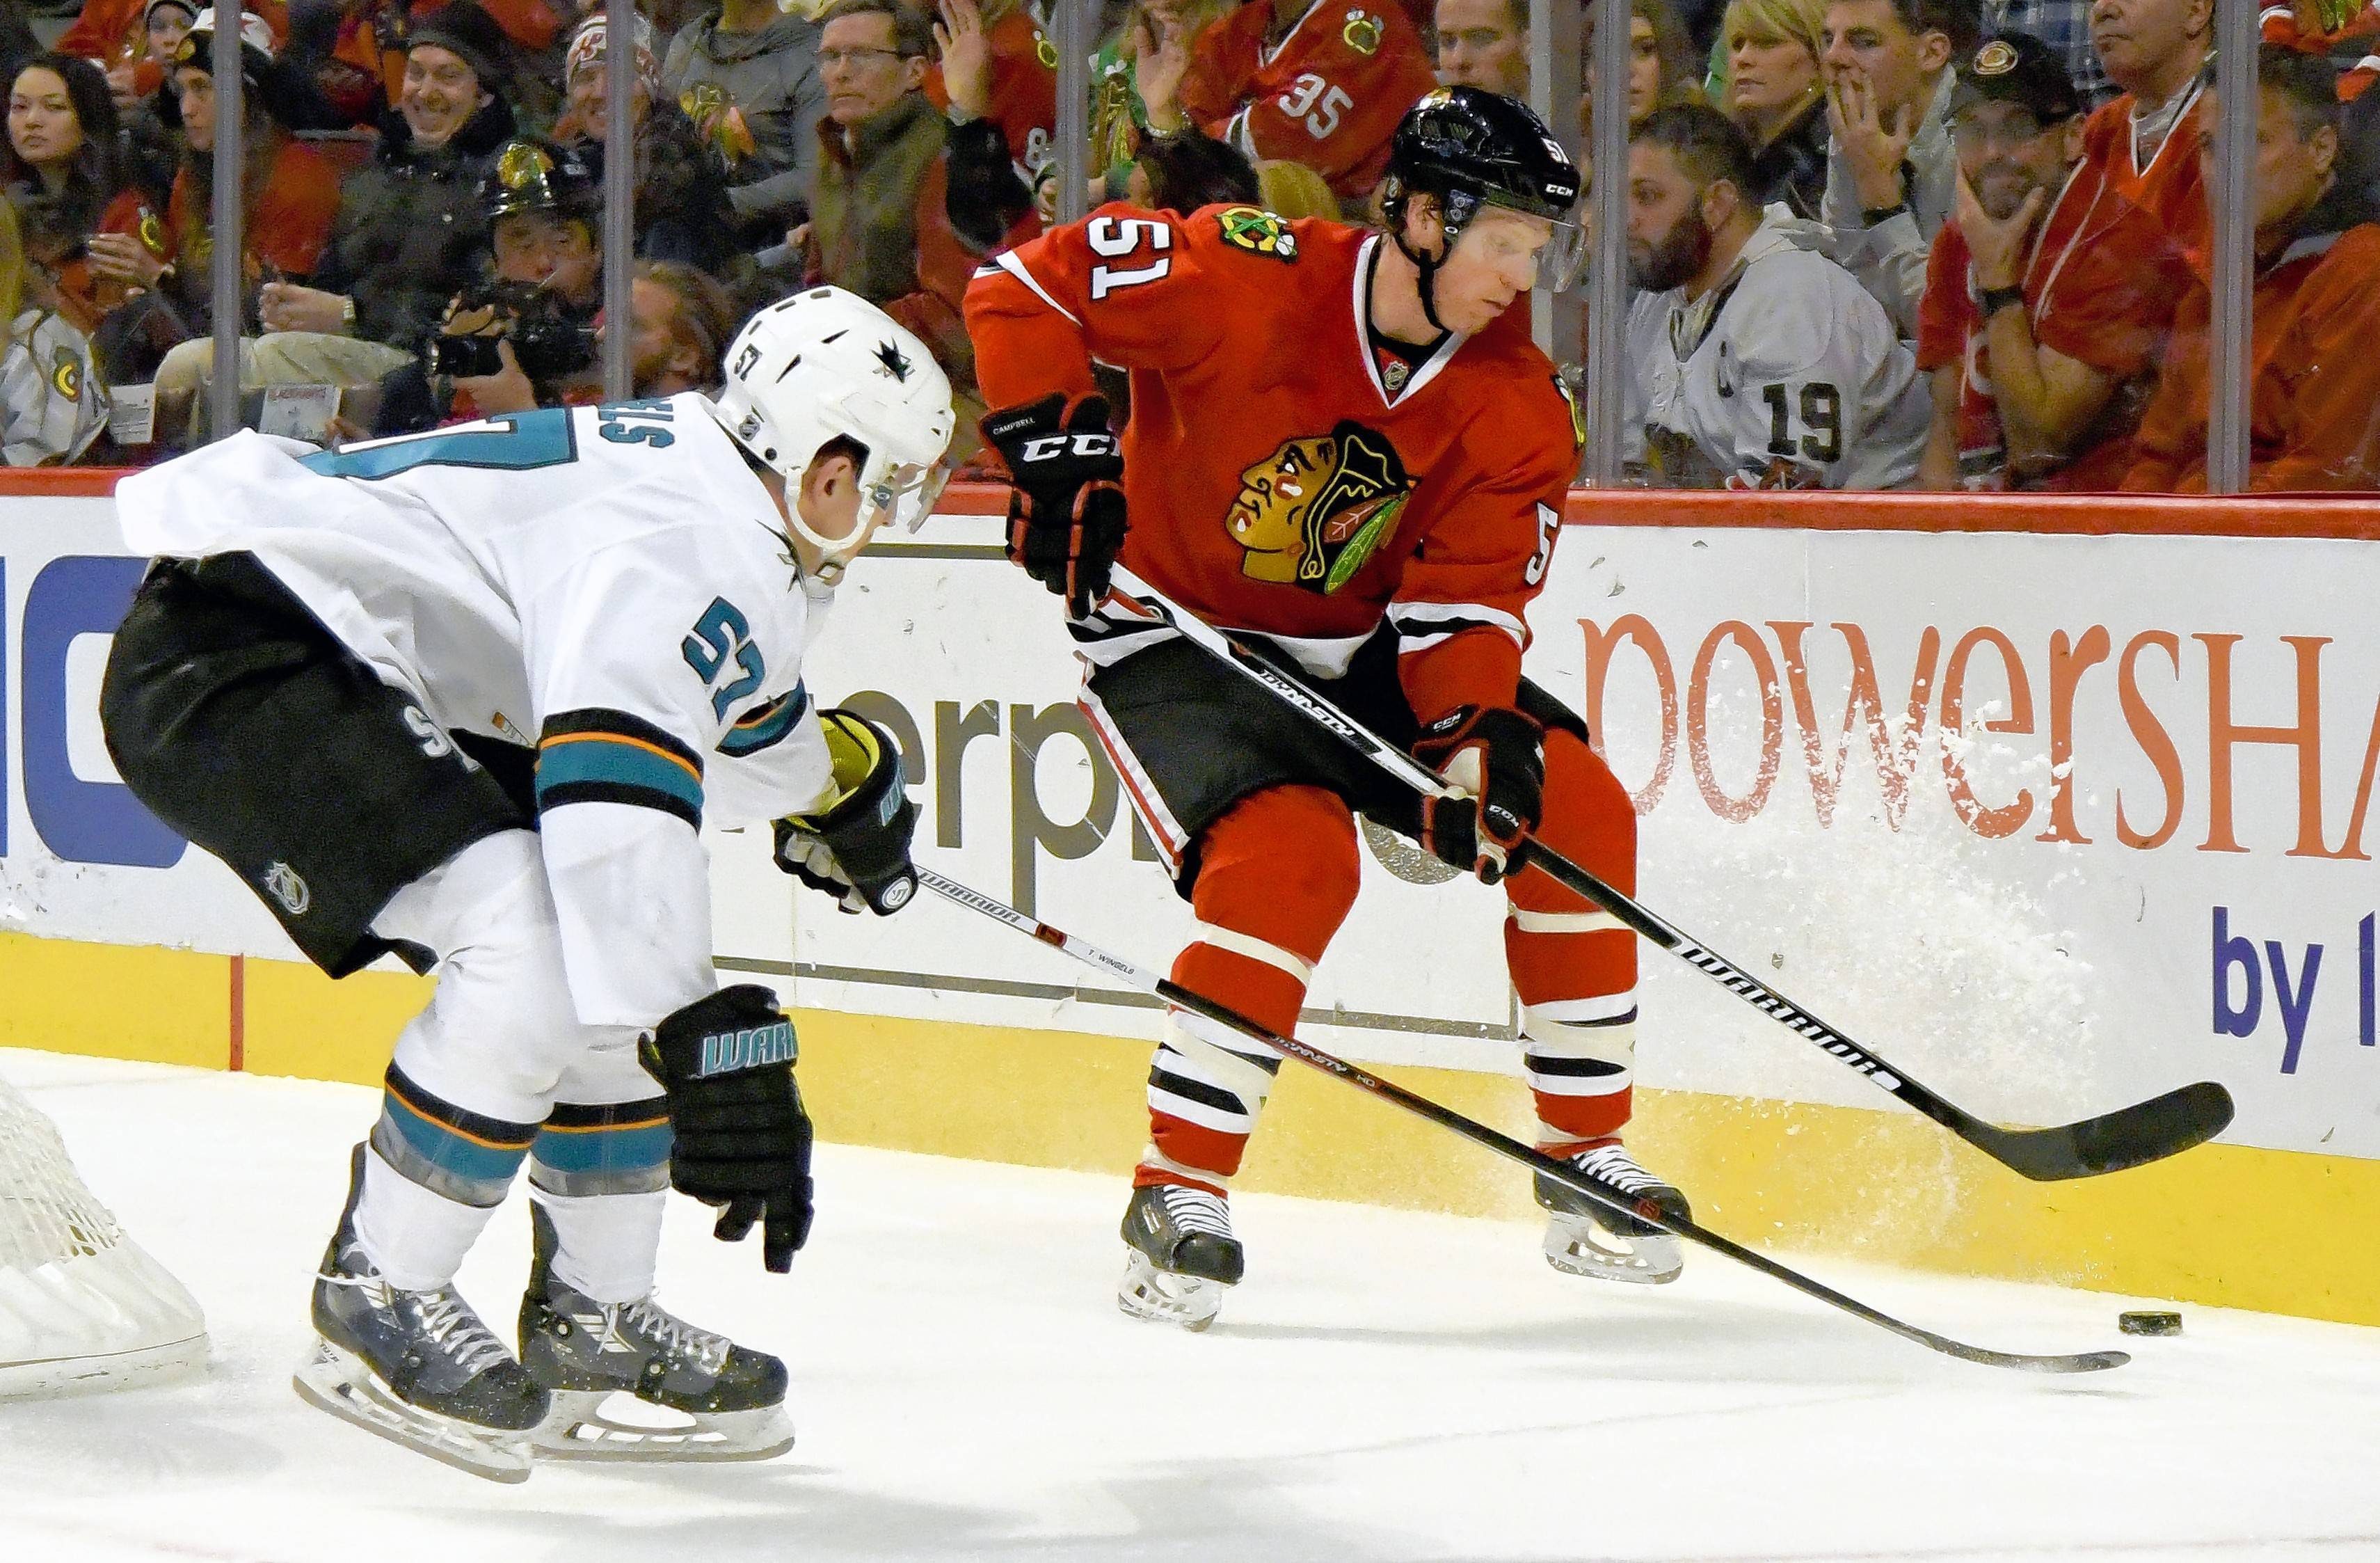 Chicago Blackhawks defenseman Brian Campbell (51) fights for a puck against San Jose Sharks center Tommy Wingels (57) during a game last December in Chicago. Campbell is retiring, and Wingels is now with the Blackhawks after signing as a free agent.